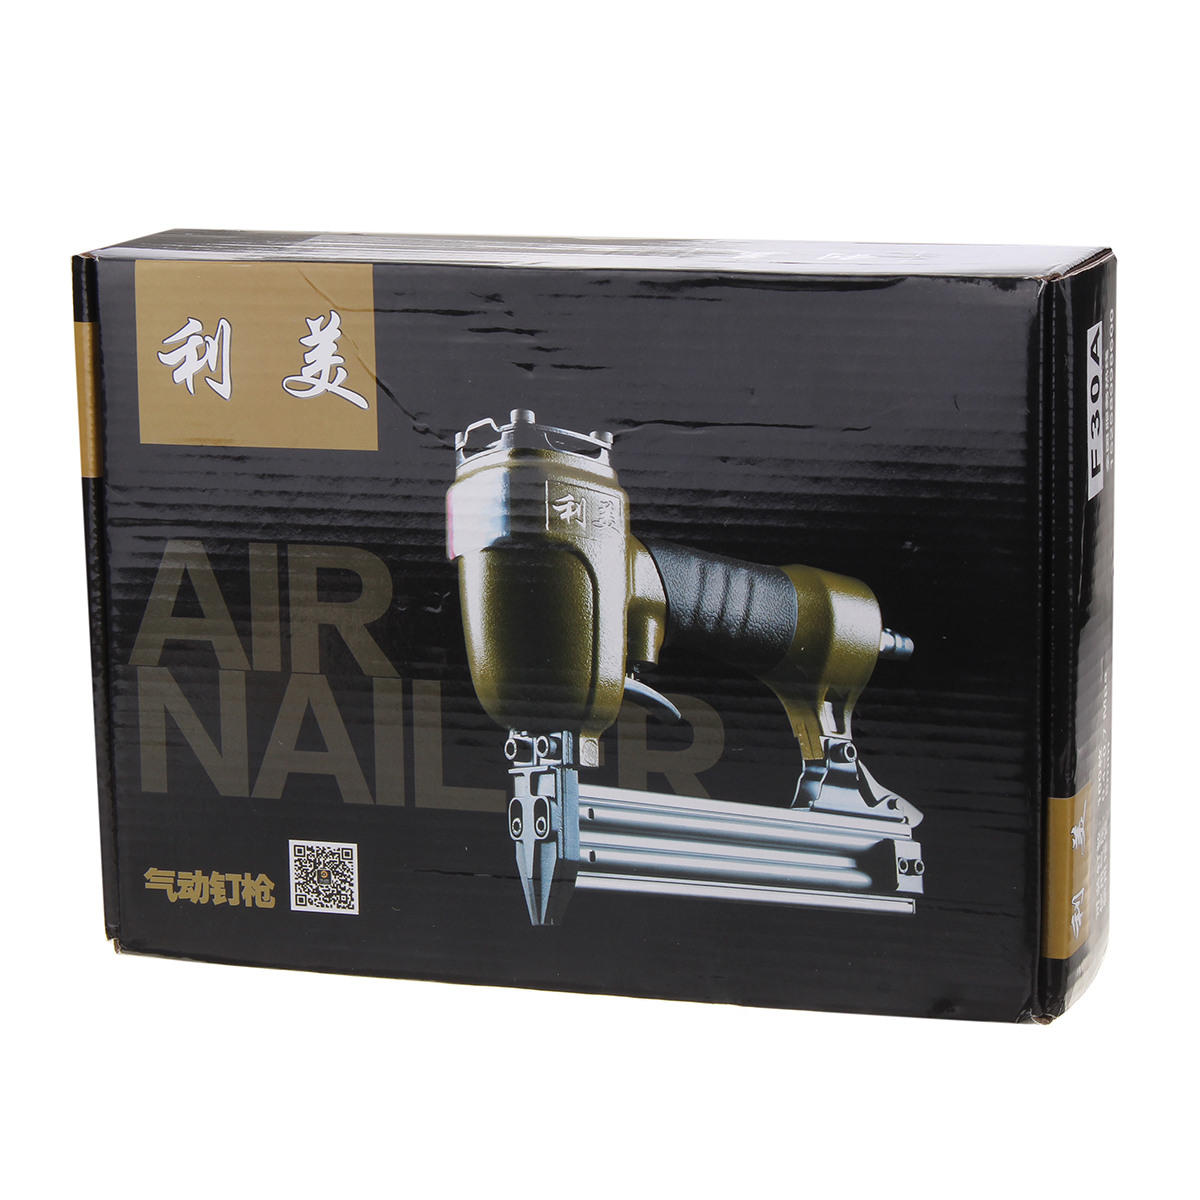 F30-A Air Nailer Gun Straight Nail Gun Pneumatic Nailing Stapler Brad Nailer Kit